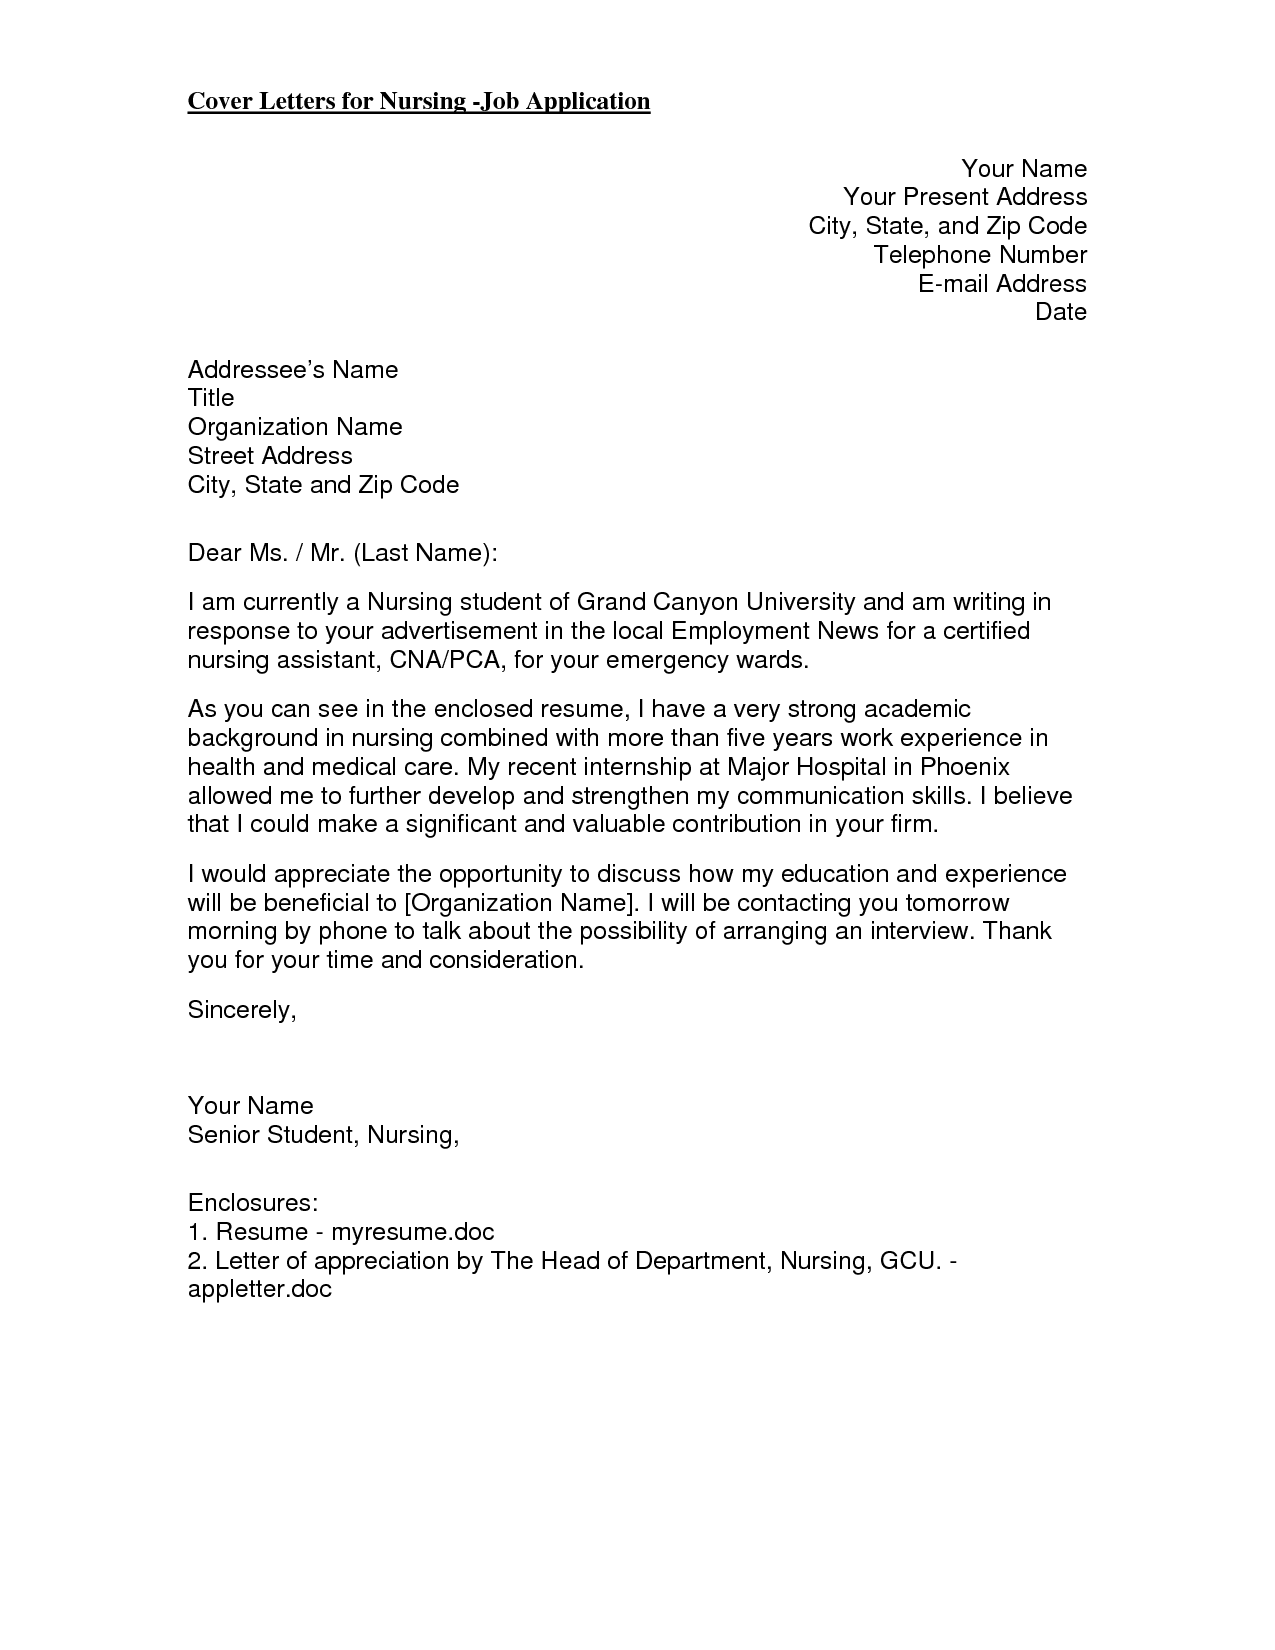 Letter Of Recommendation For Nurse Practitioner School